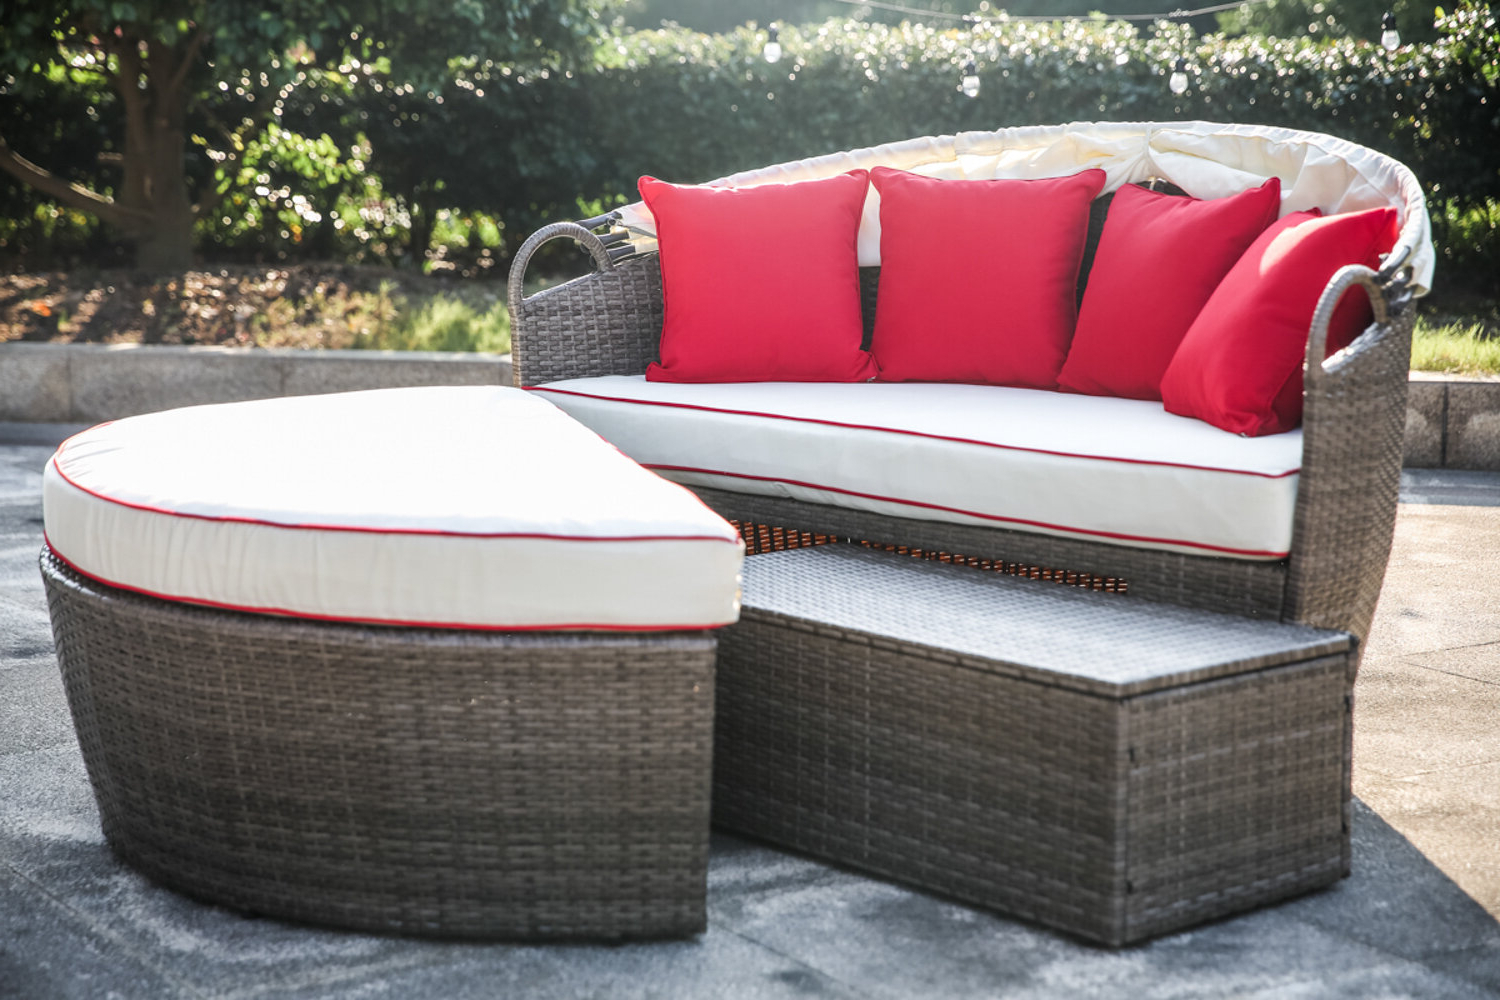 Wayfair With Regard To Latest Greening Outdoor Daybeds With Ottoman & Cushions (View 5 of 20)